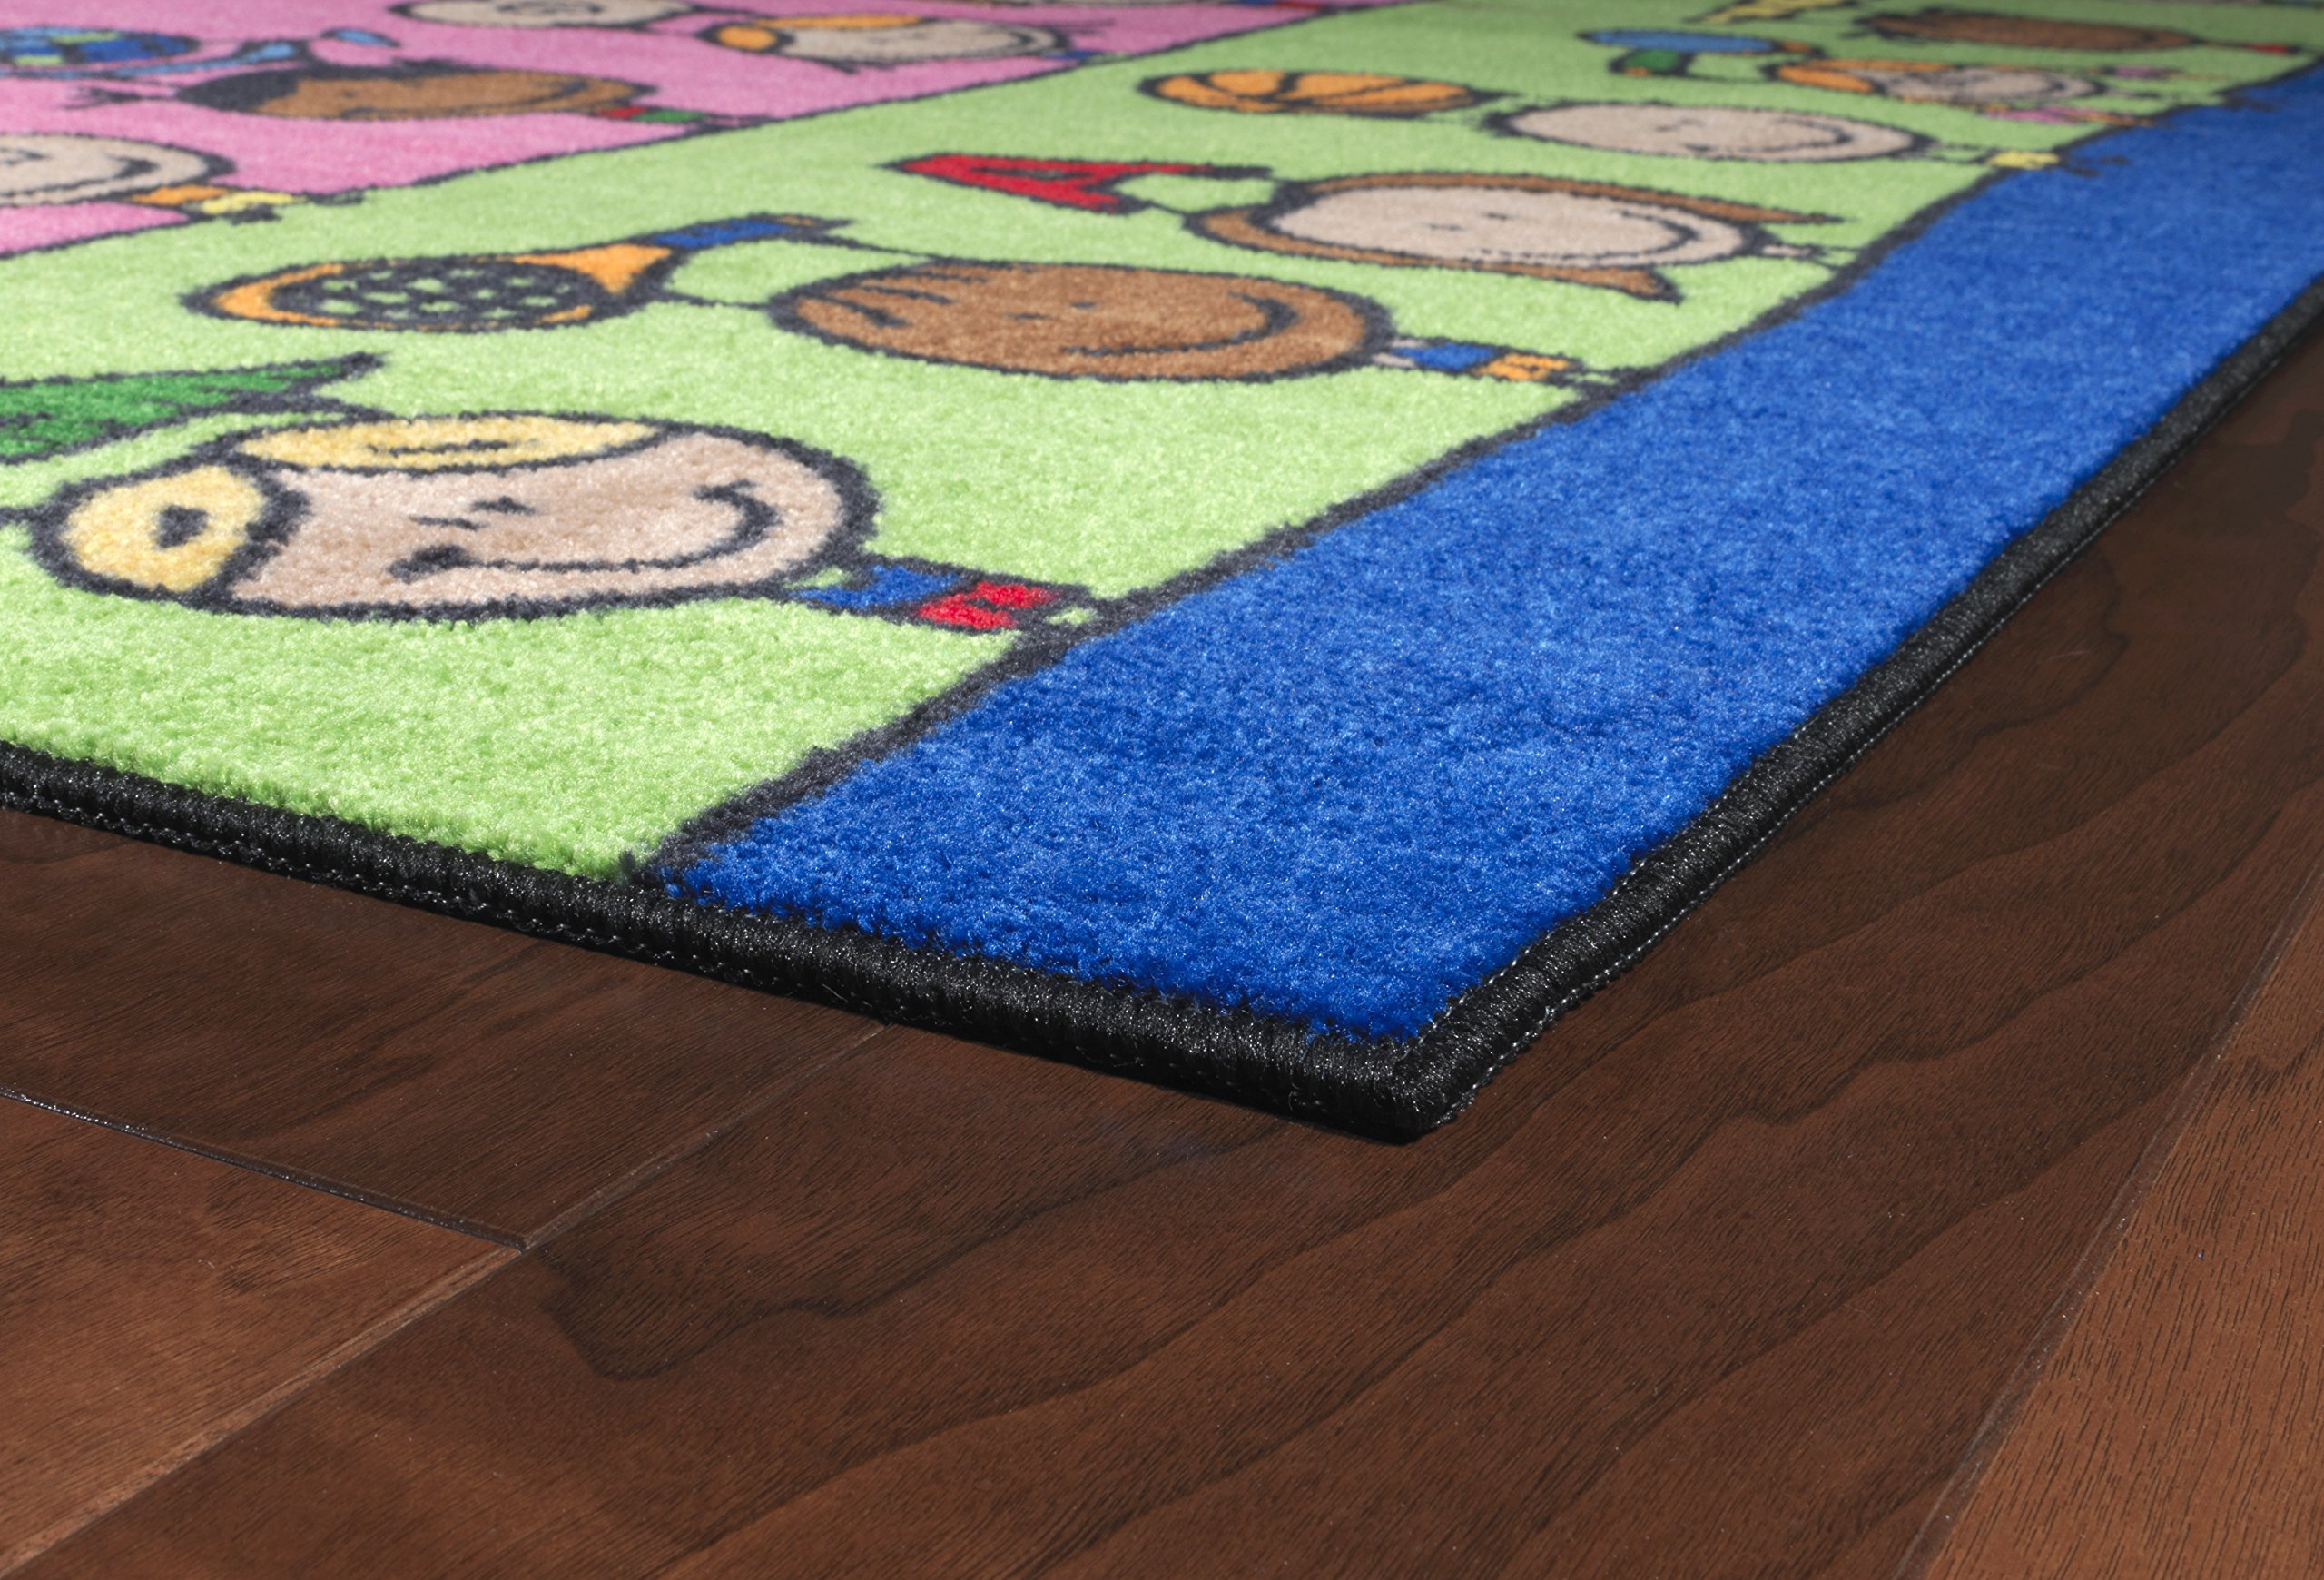 Flagship Carpets CE190-28W Fun at School Rug, Explore Health and Wellness As Well As STEAM Subjects, Children's Classroom Educational Carpet, 5' x 8', 60'' Length, 96'' Width, Multi-Color by Flagship Carpets (Image #13)